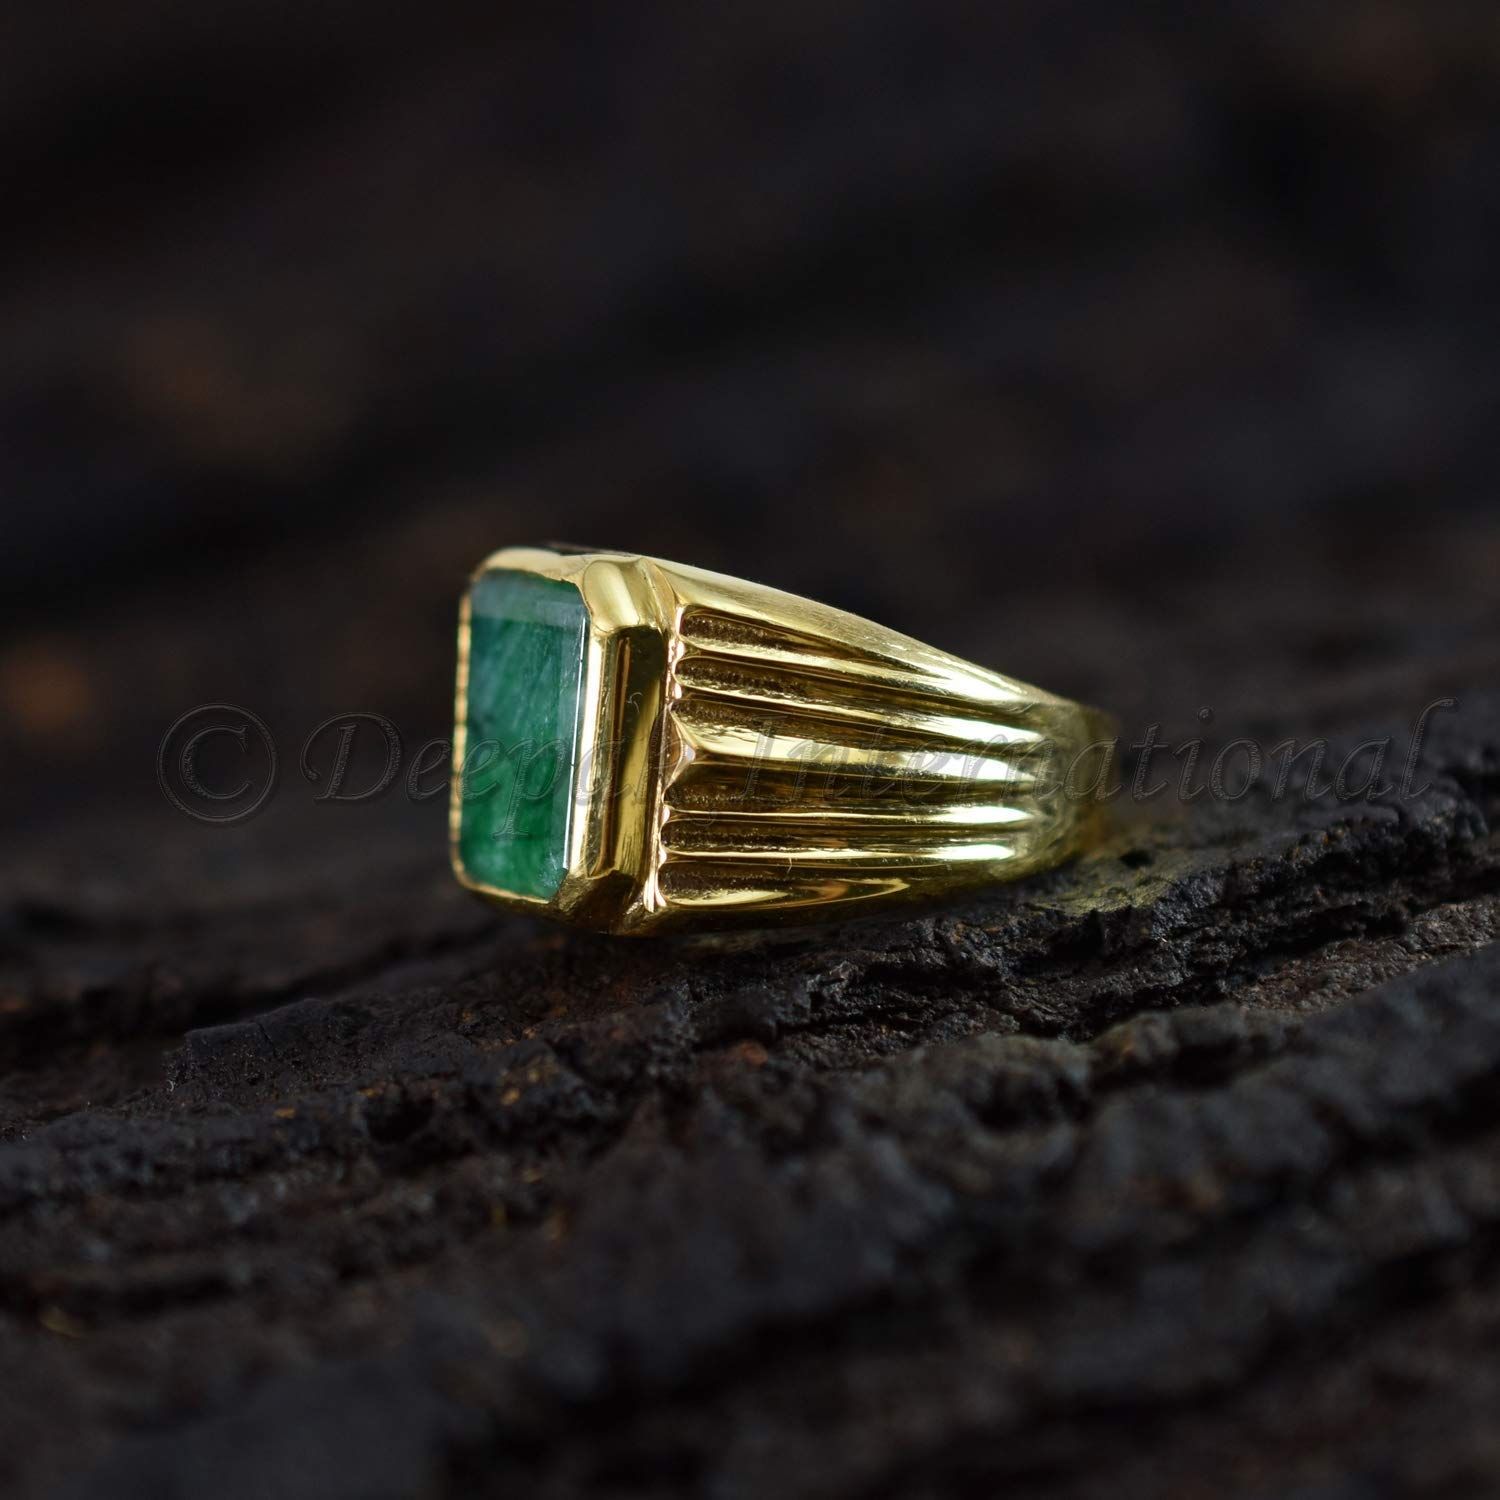 Details about  /Solid 925 Sterling Silver Ring Emerald Faceted Solitaire Ring Jewelry GESR190B